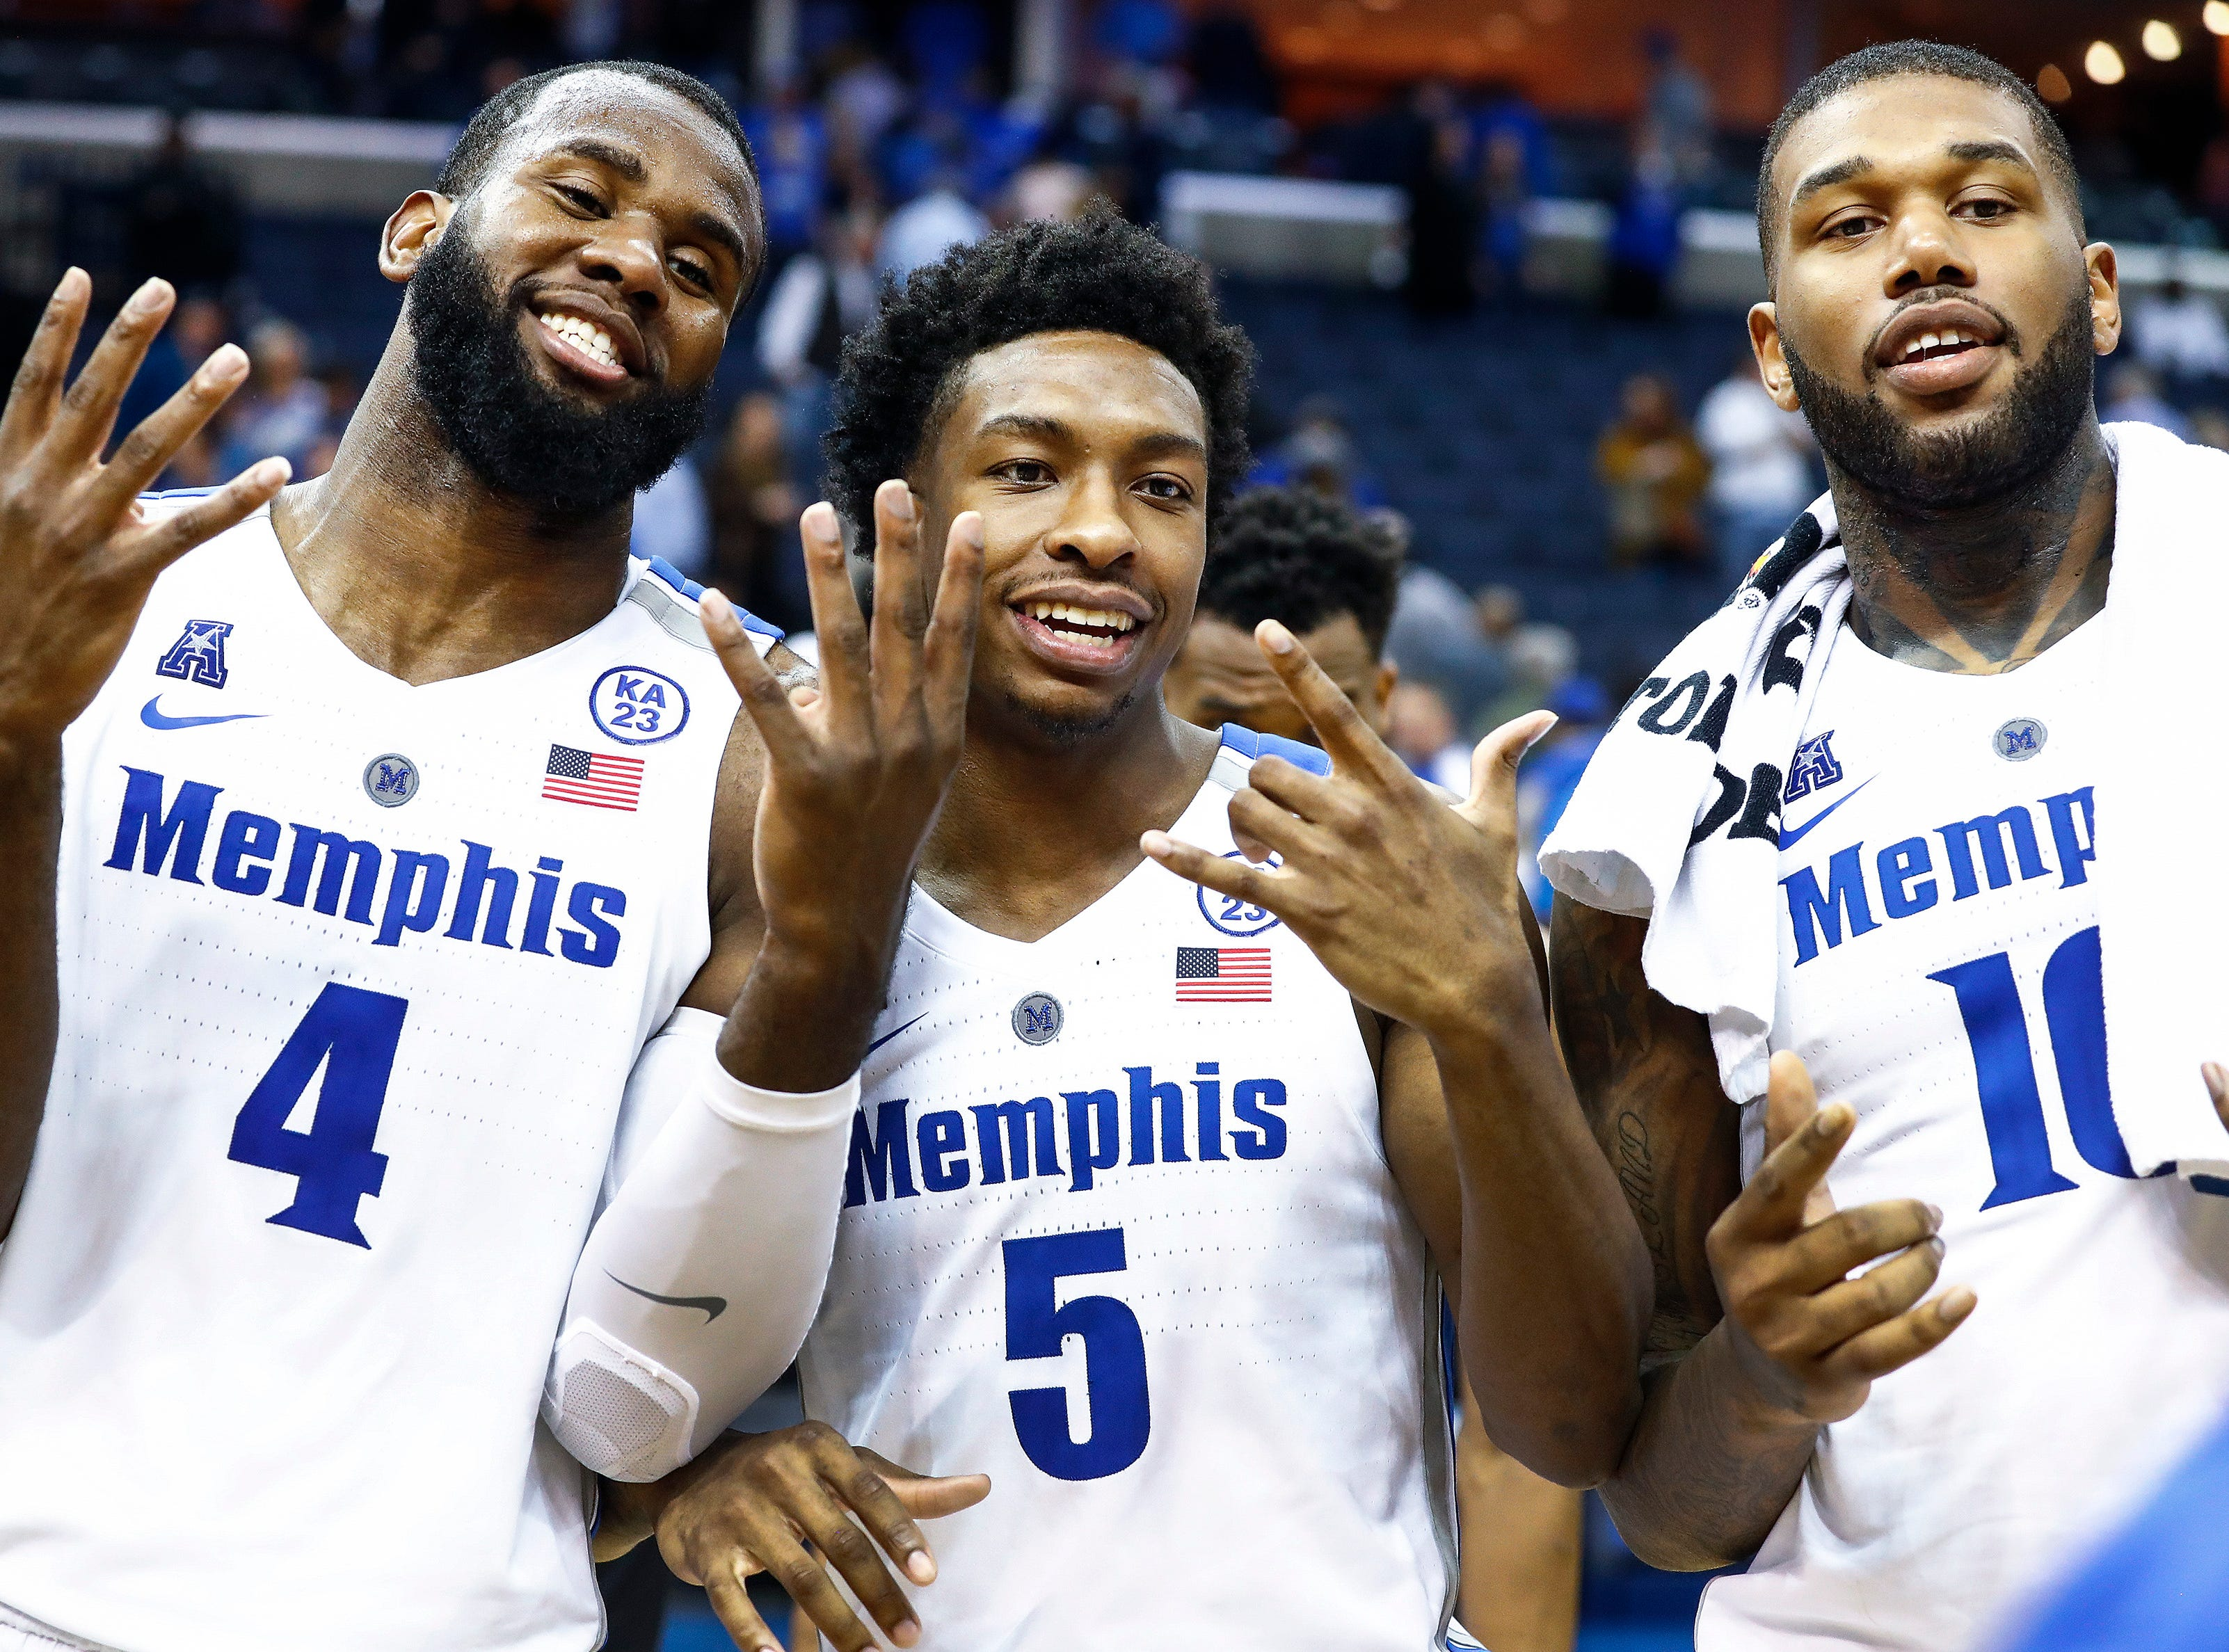 Memphis seniors (left to right) Raynere Thornton, Kareem Brewton Jr. and Mike Parks Jr. celebrate after a 66-63 victory over Tulsa at the FedExForum, Saturday, March 9, 2019.